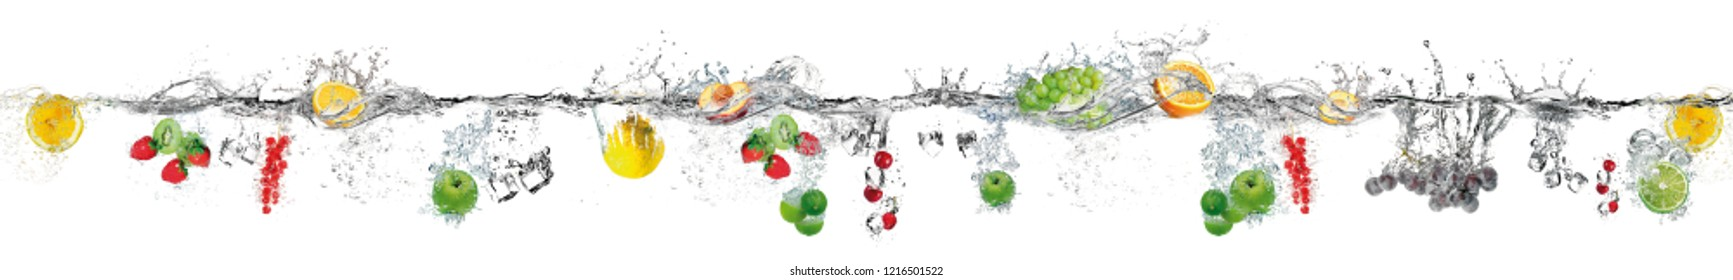 Fresh berries and fruits make sprays from falling.